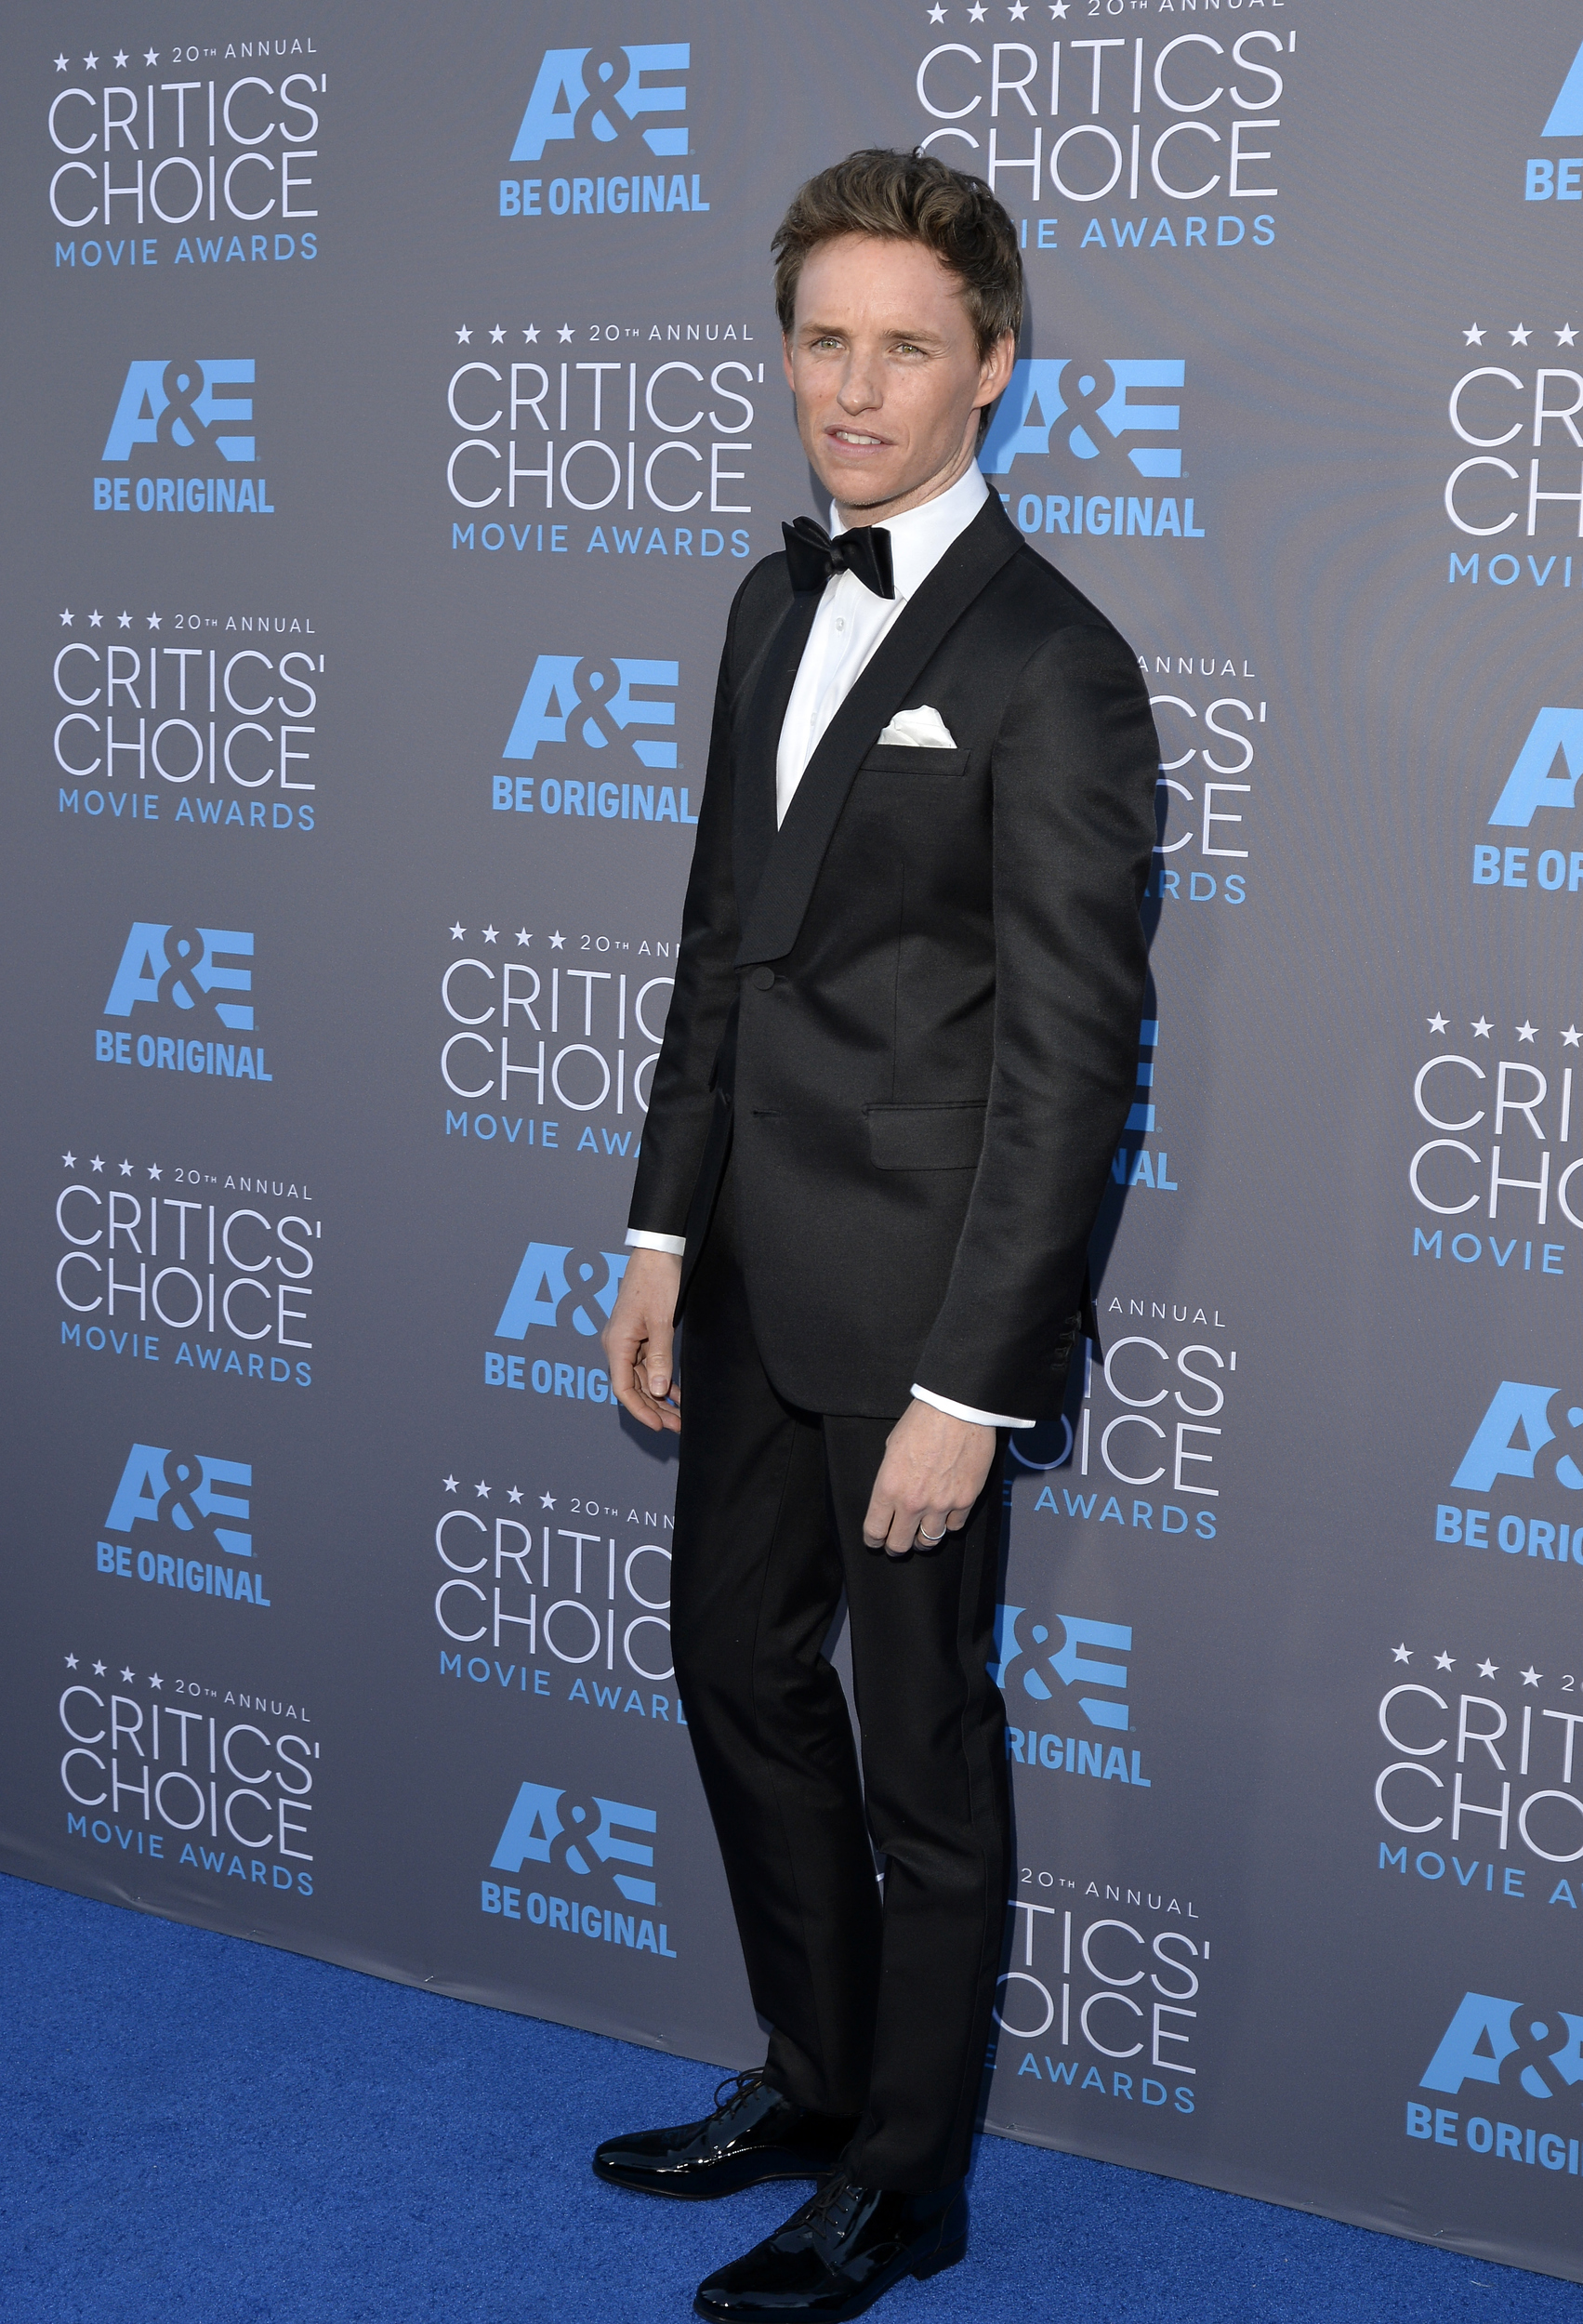 Eddie-redmayne-critics-choice-awards-20158